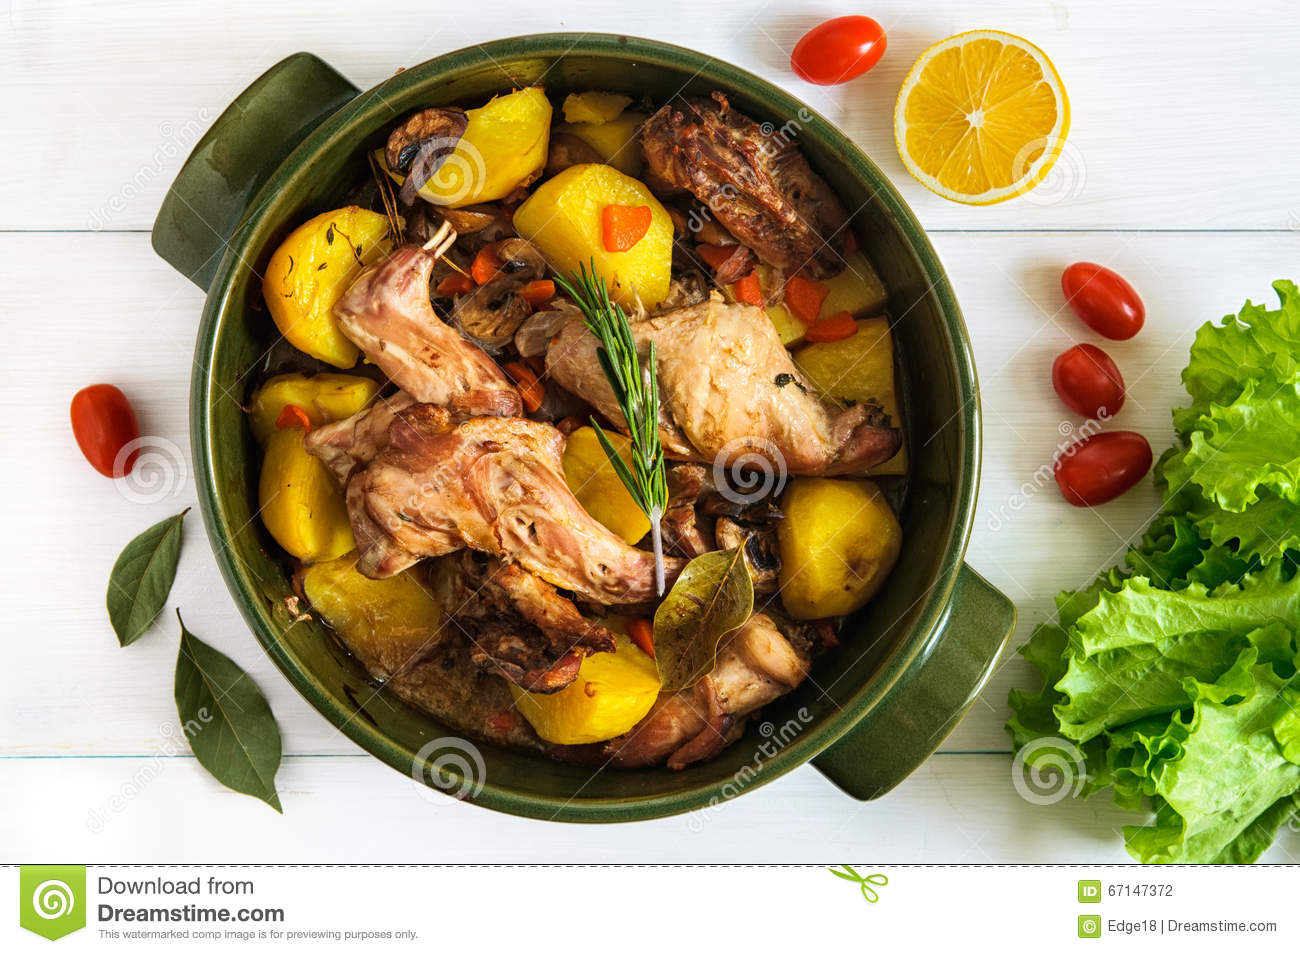 Download Top Flat View Of Roasted Rabbit Meat With Vegetables In Round Ceramic Pot On White Wooden Table Surface. Food Stock Photo - Image of recipe, herbs: 67147372